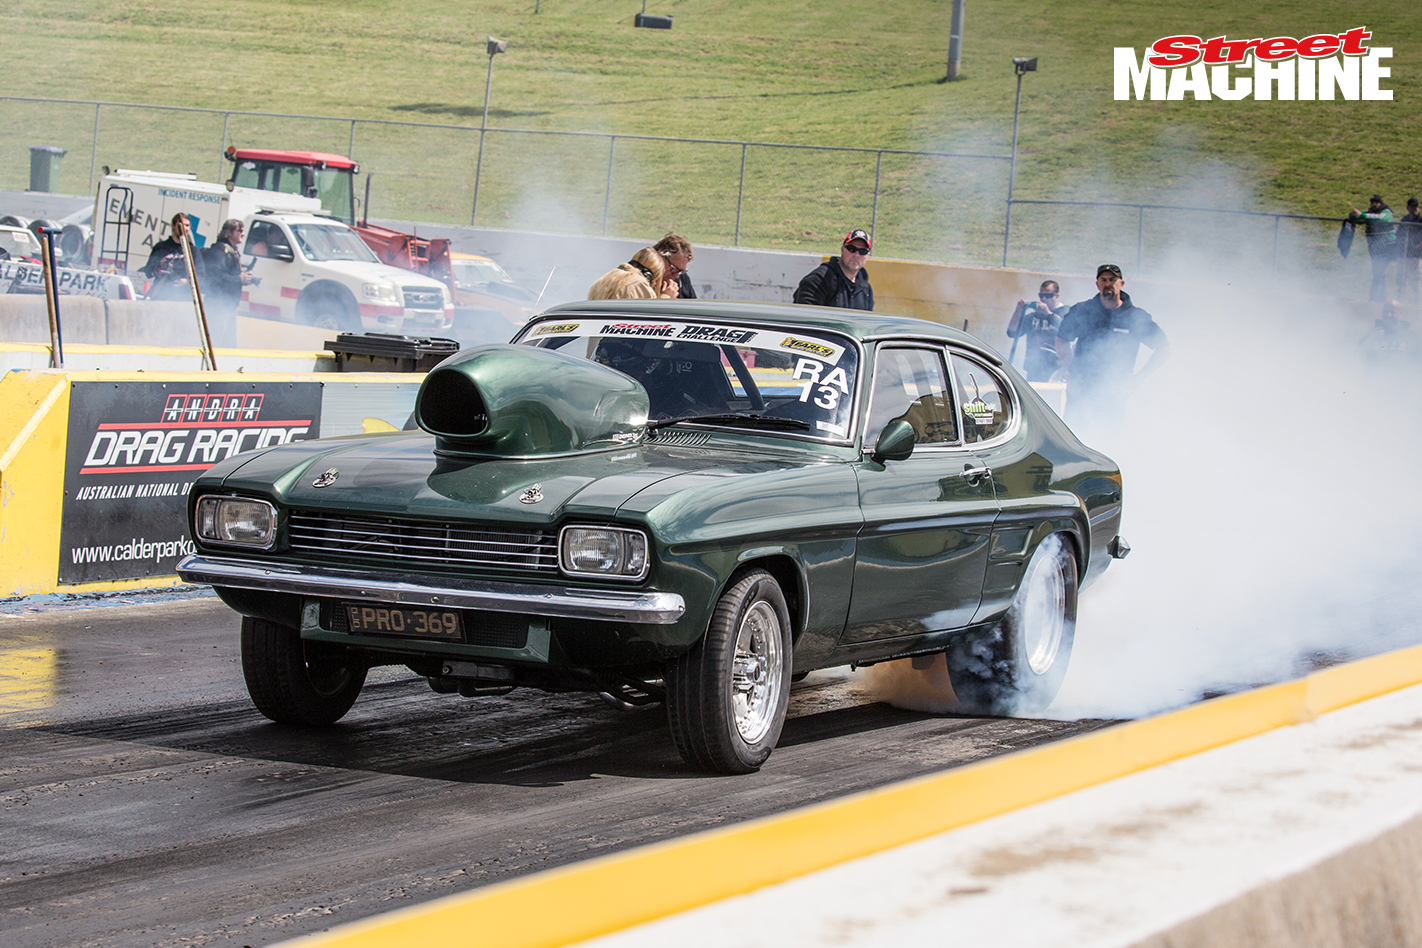 Ford Capri Drag Race 4